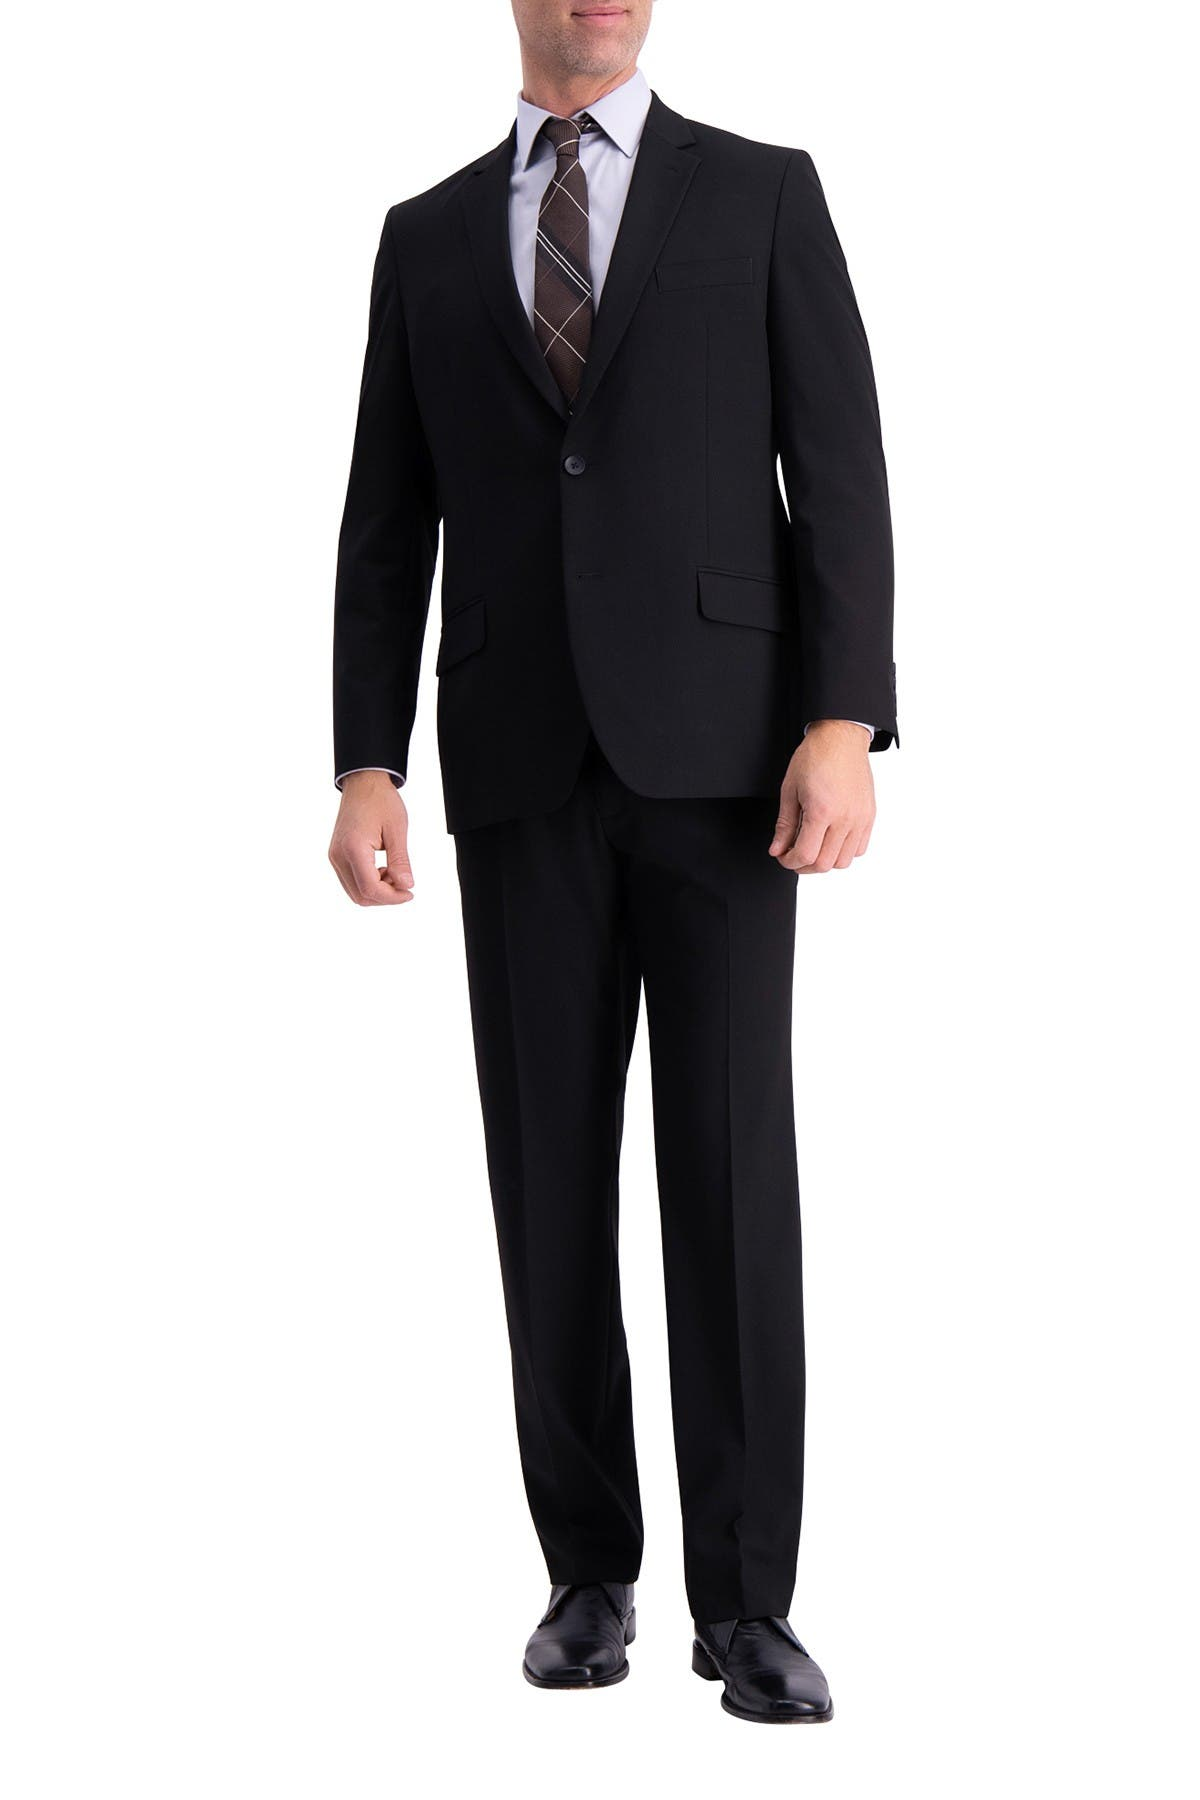 Image of HAGGAR Stretch Solid 4-Way Stretch 2-Button Suit Separate Coat